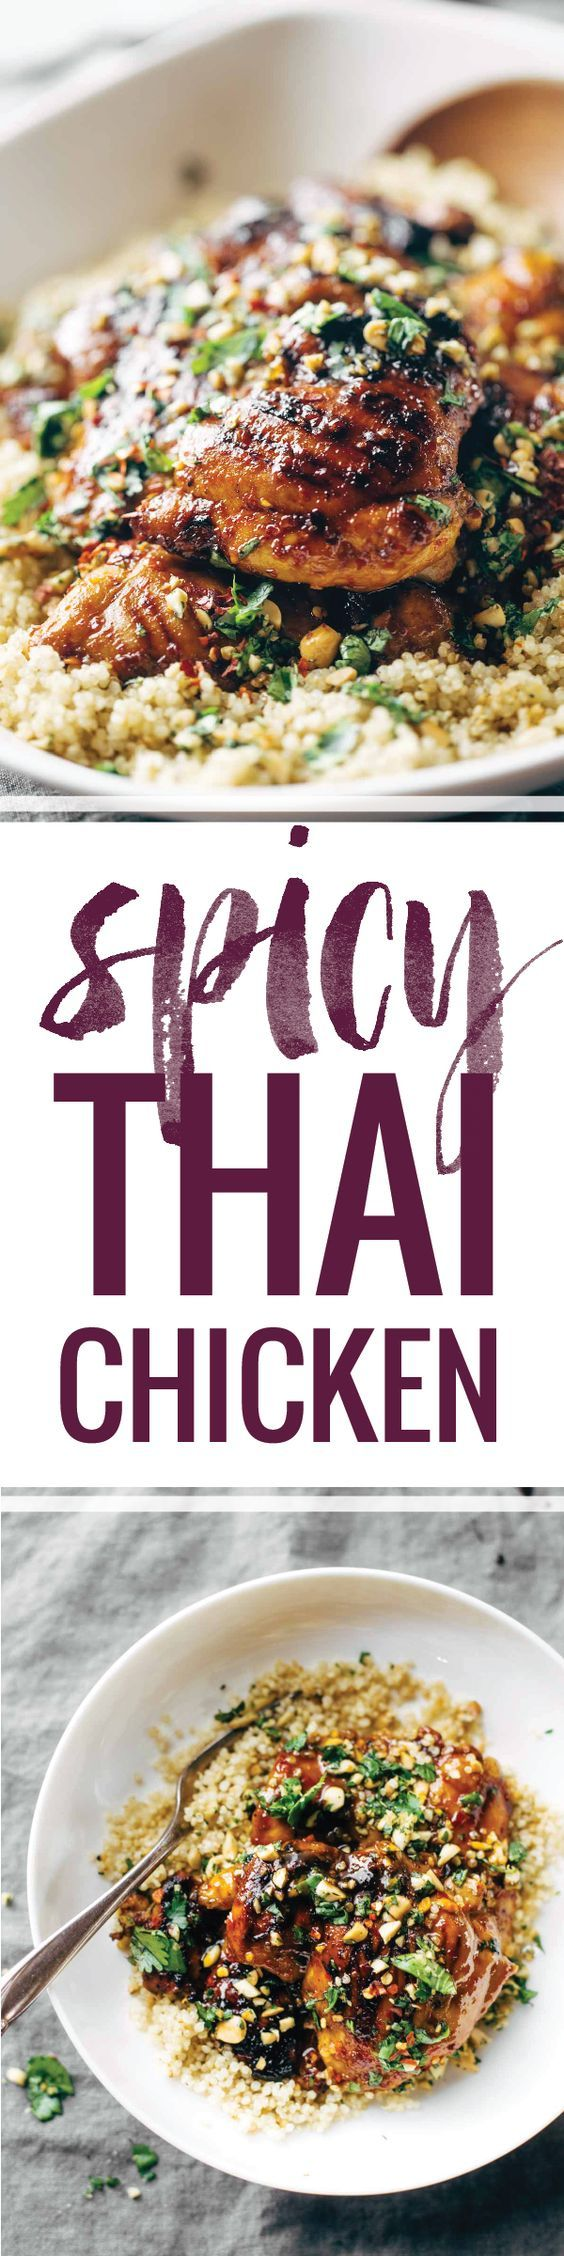 Spicy Thai Chicken and Quinoa, made with chili sauce, agave, lime juice, garlic, cilantro, and peanuts! Sticky, saucy, and delicious. | pinchofyum.com: